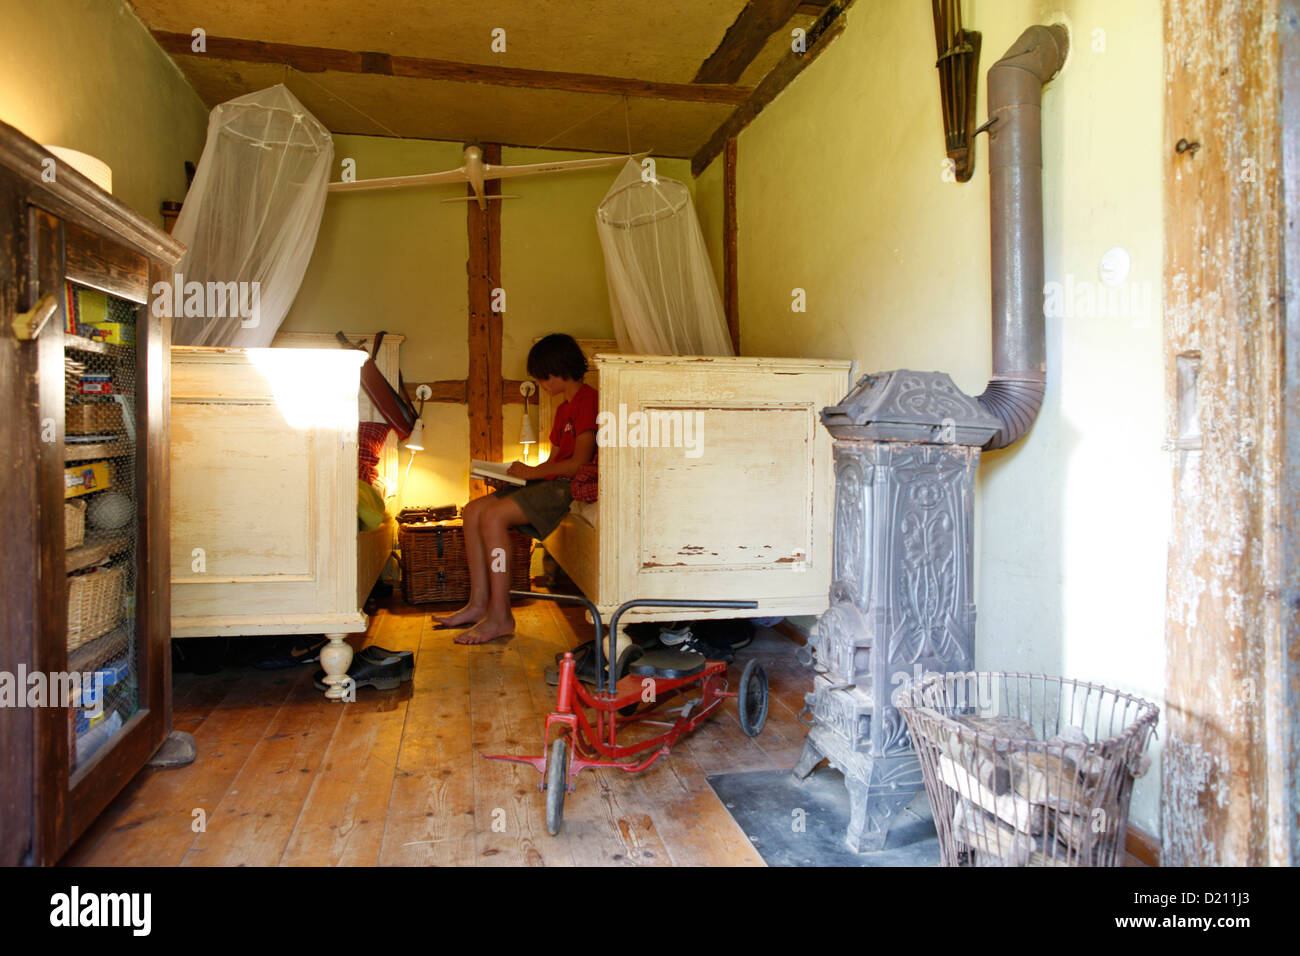 Two children inside children's room, Klein Thurow, Roggendorf, Mecklenburg-Western Pomerania, Germany Stock Photo